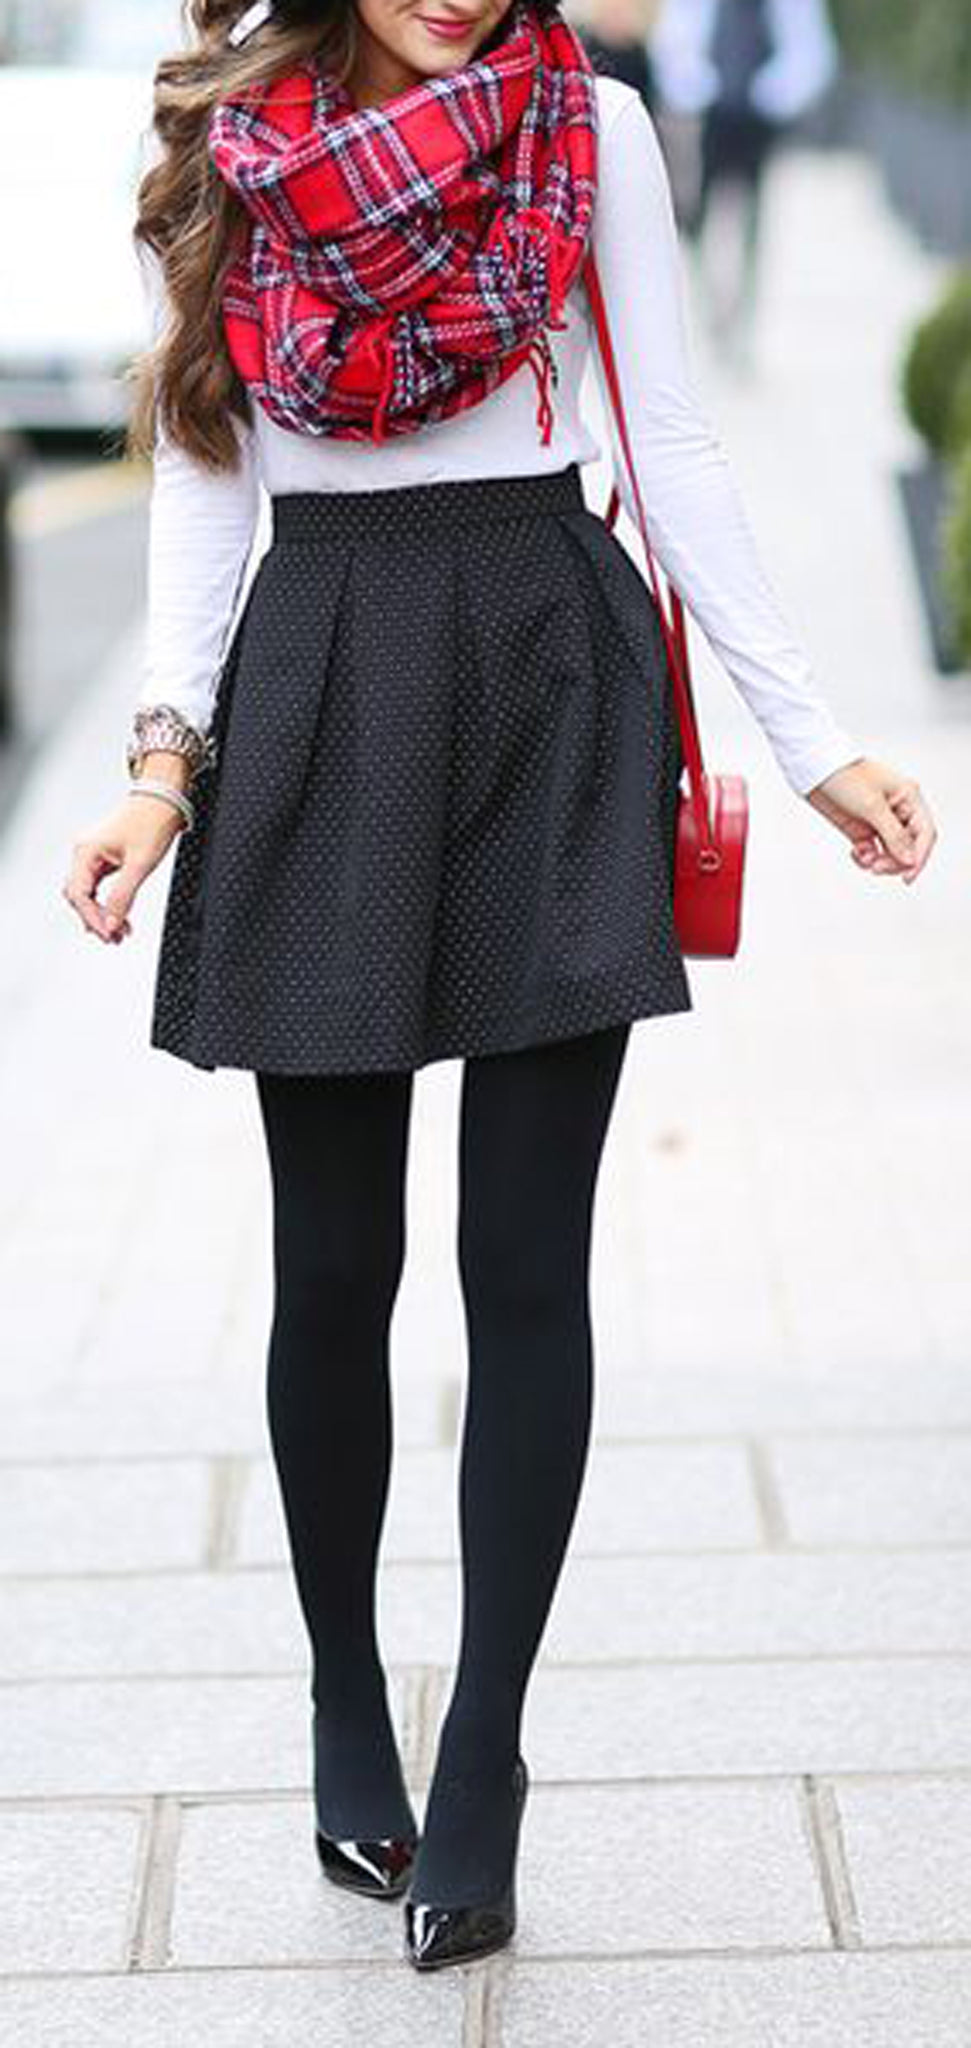 Cozy Casual  Preppy Holiday Outfit Ideas for Christmas Evening Party - Red Plaid Scarf - Black Skater Skirt - Stockings - White Crop Top - MyBodiArt.com